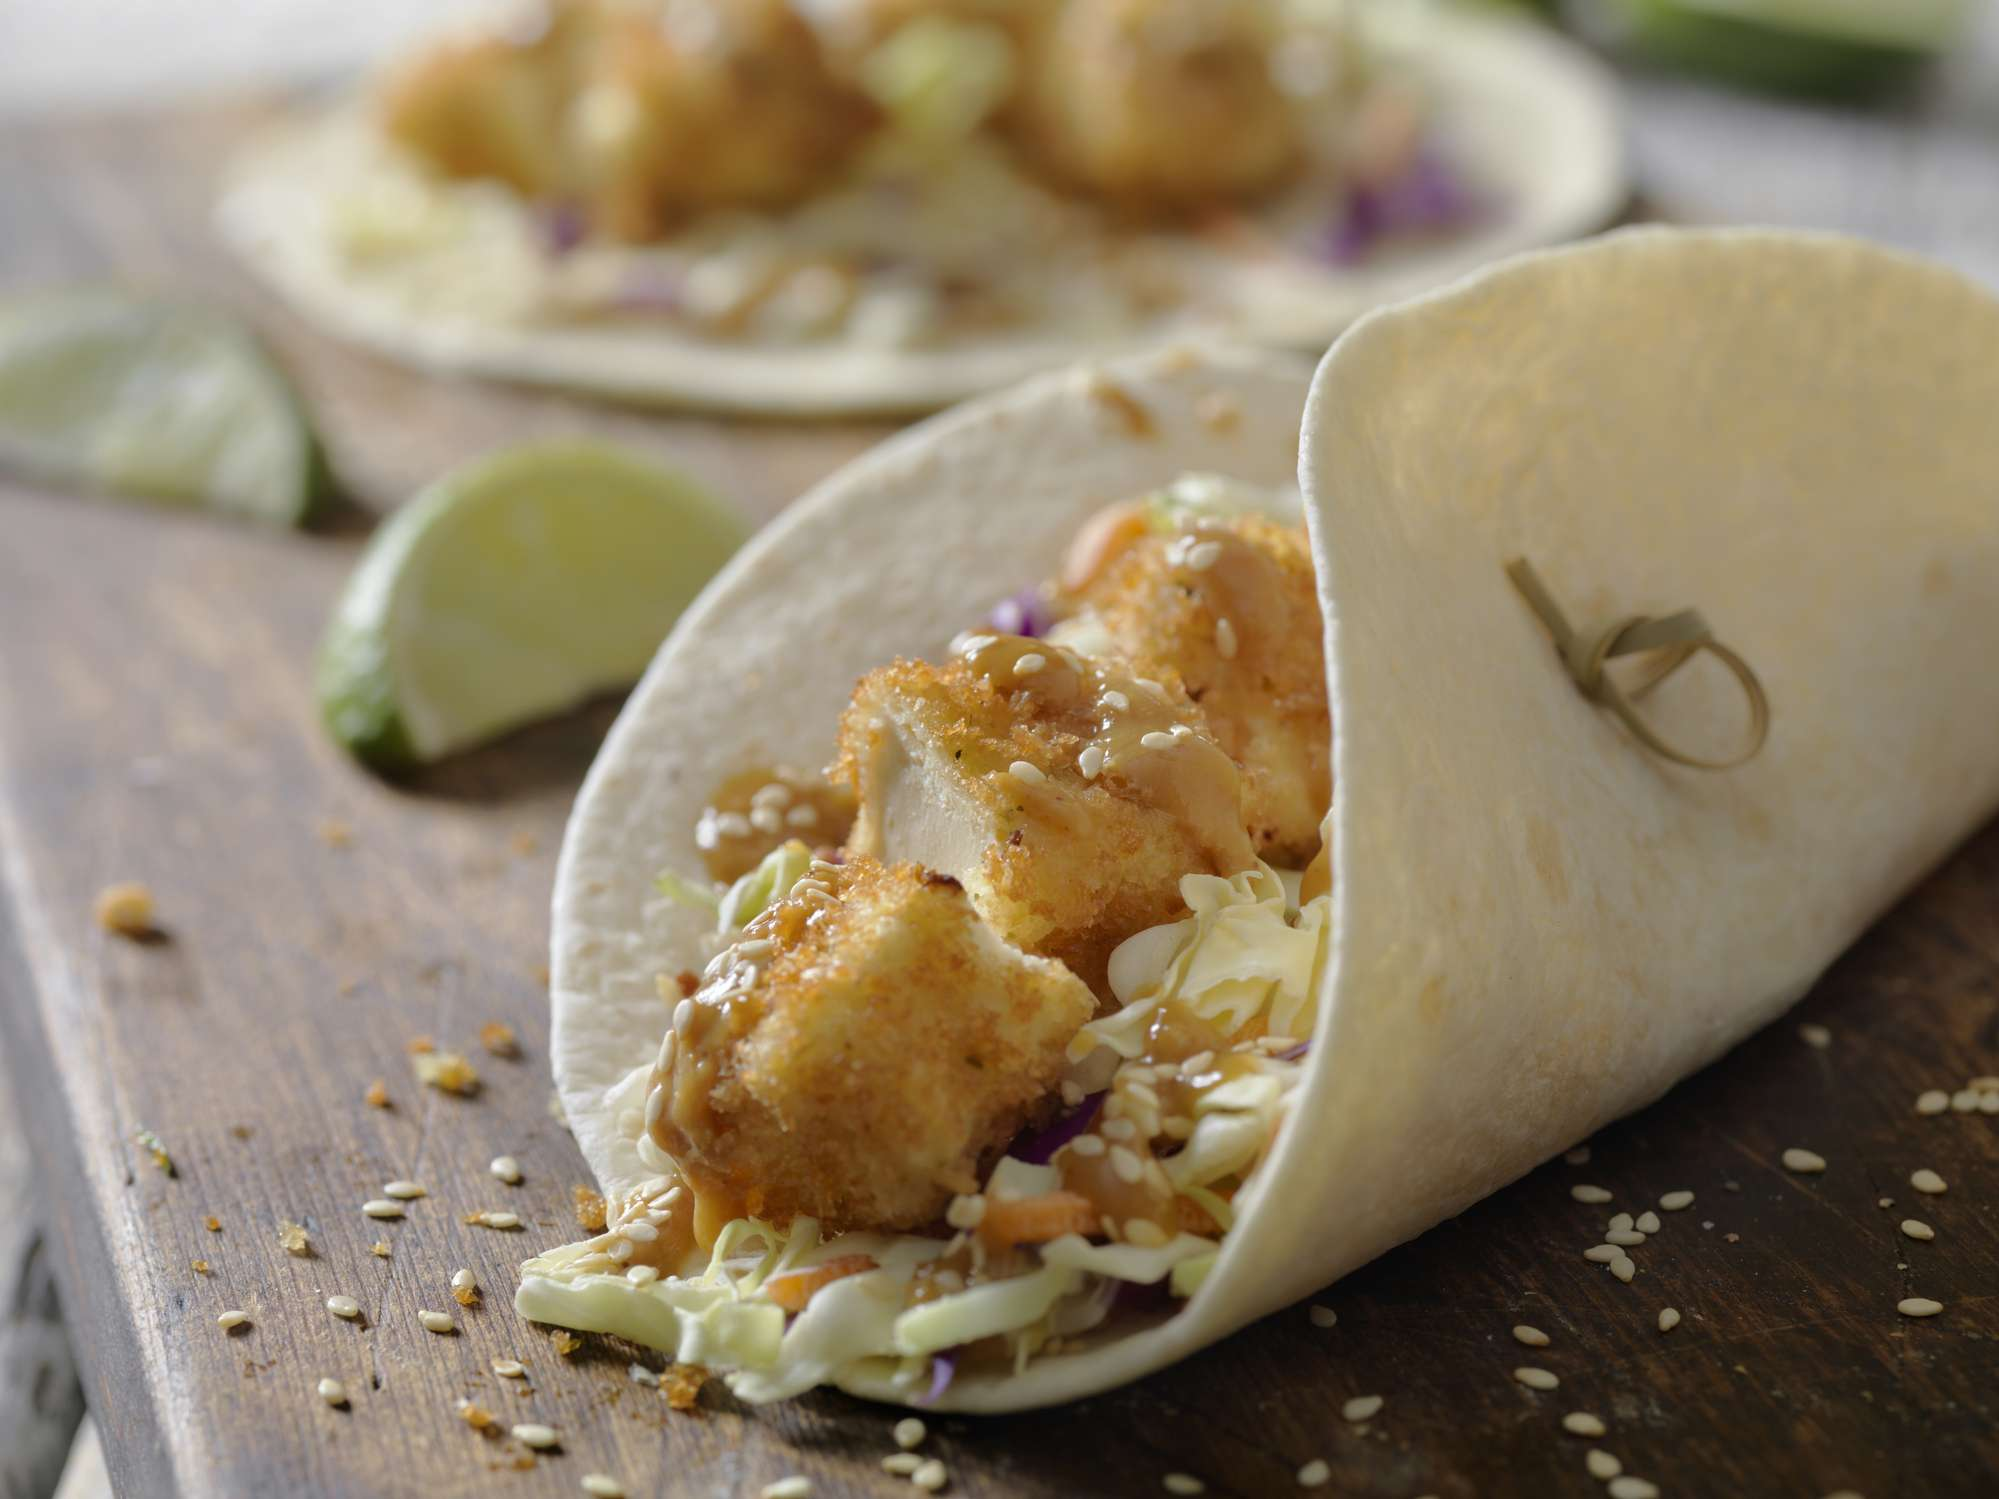 Tofu breaded tacos with coleslaw